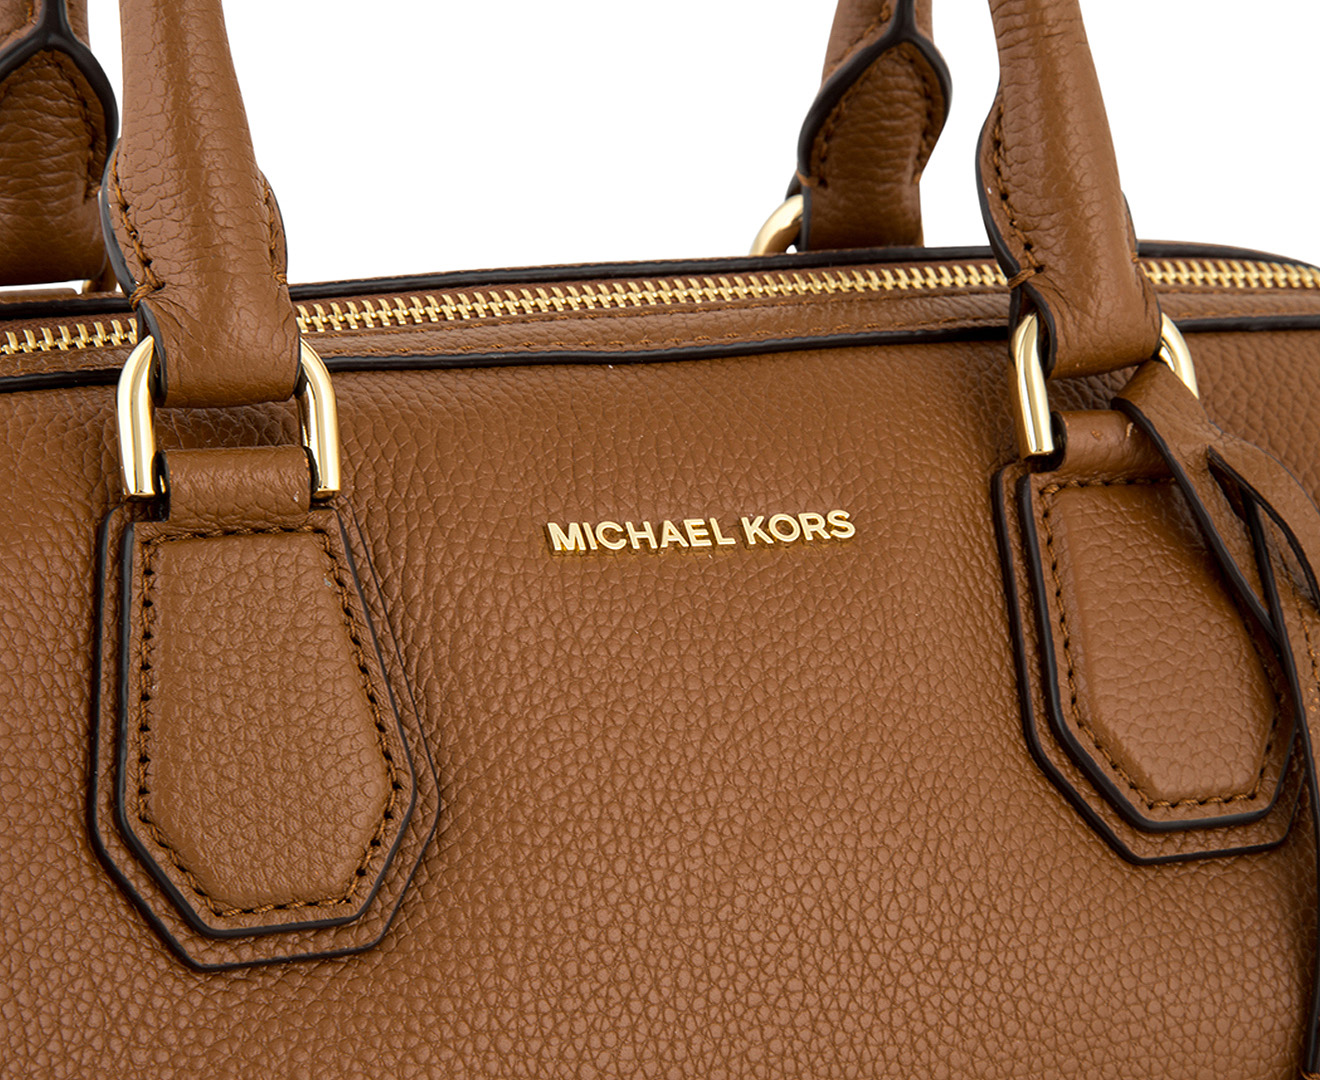 Michael Kors (kors) is closing up to stores this year as it continues to partially unwind an aggressive expansion that had served it well when its namesake brand was hot. The upscale brand.